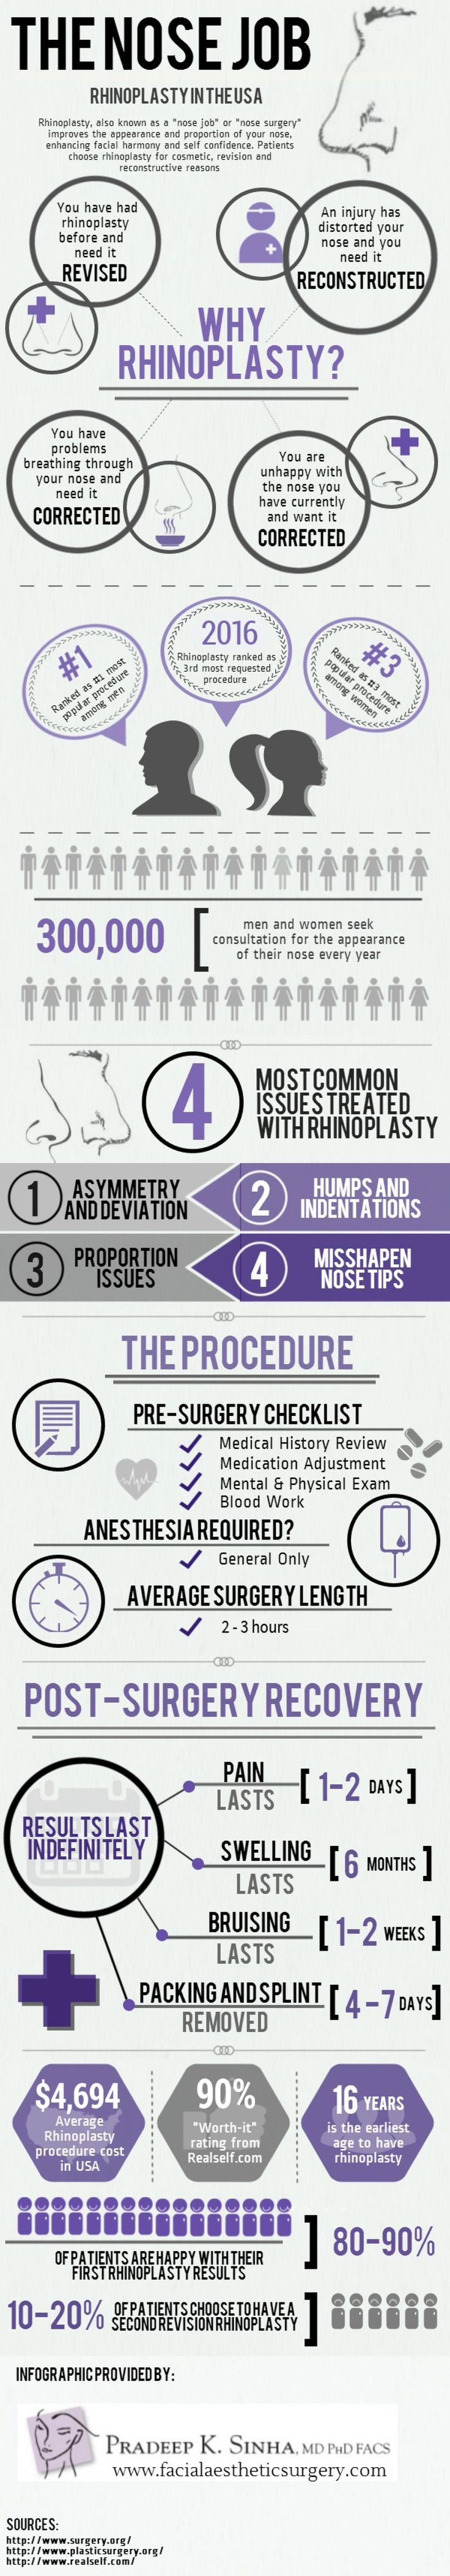 RHINOPLASTY ATLANTA (NOSE RESHAPING) Facial Aesthetic Surgery » Face & Neck Plastic Infographic